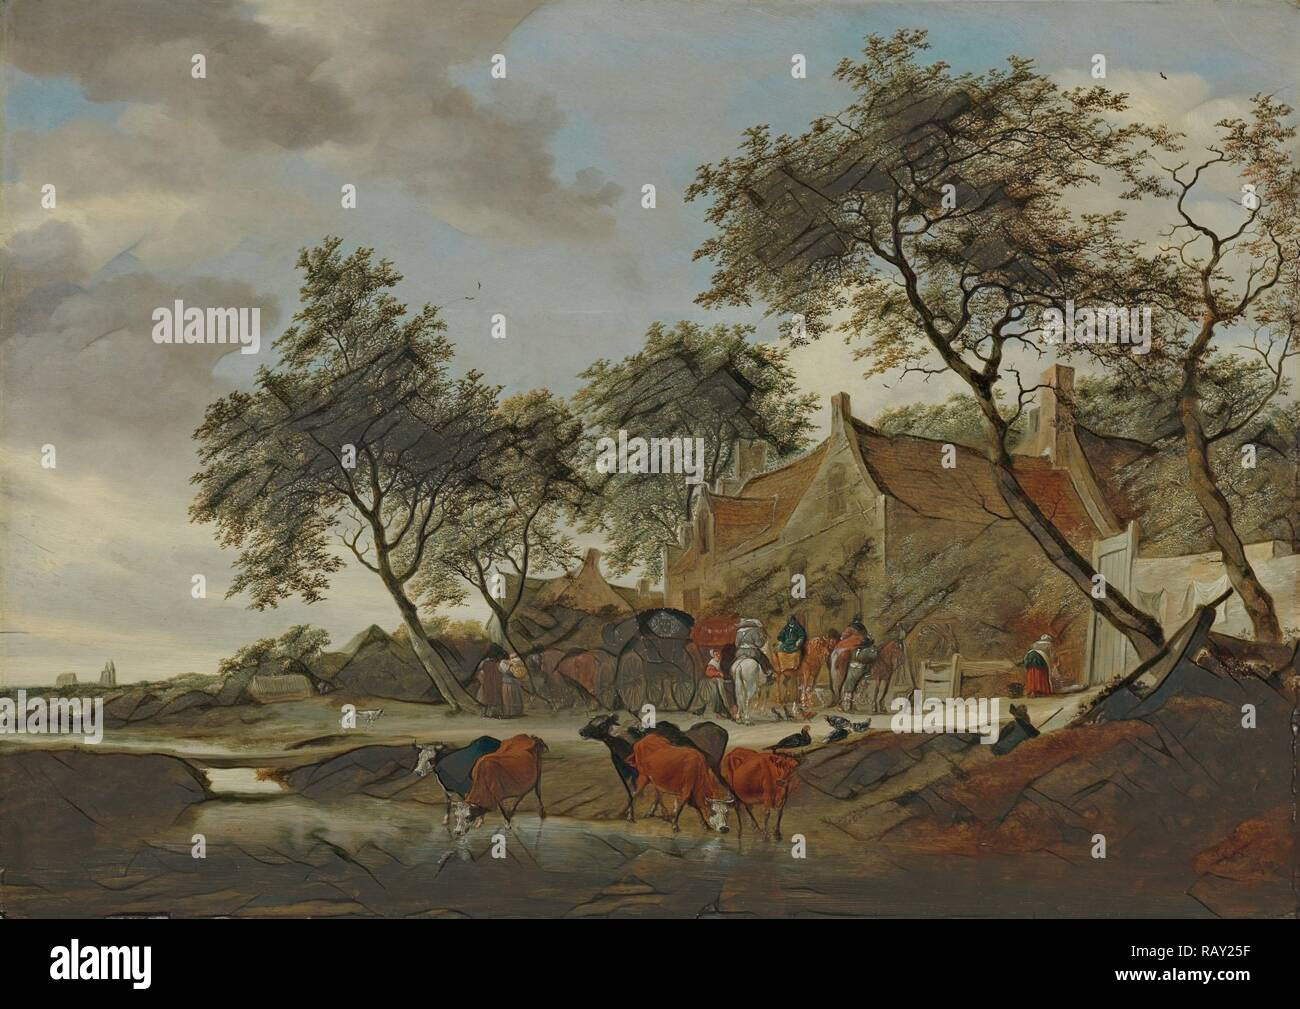 The watering place, Salomon van Ruysdael, 1660. Reimagined by Gibon. Classic art with a modern twist reimagined Stock Photo